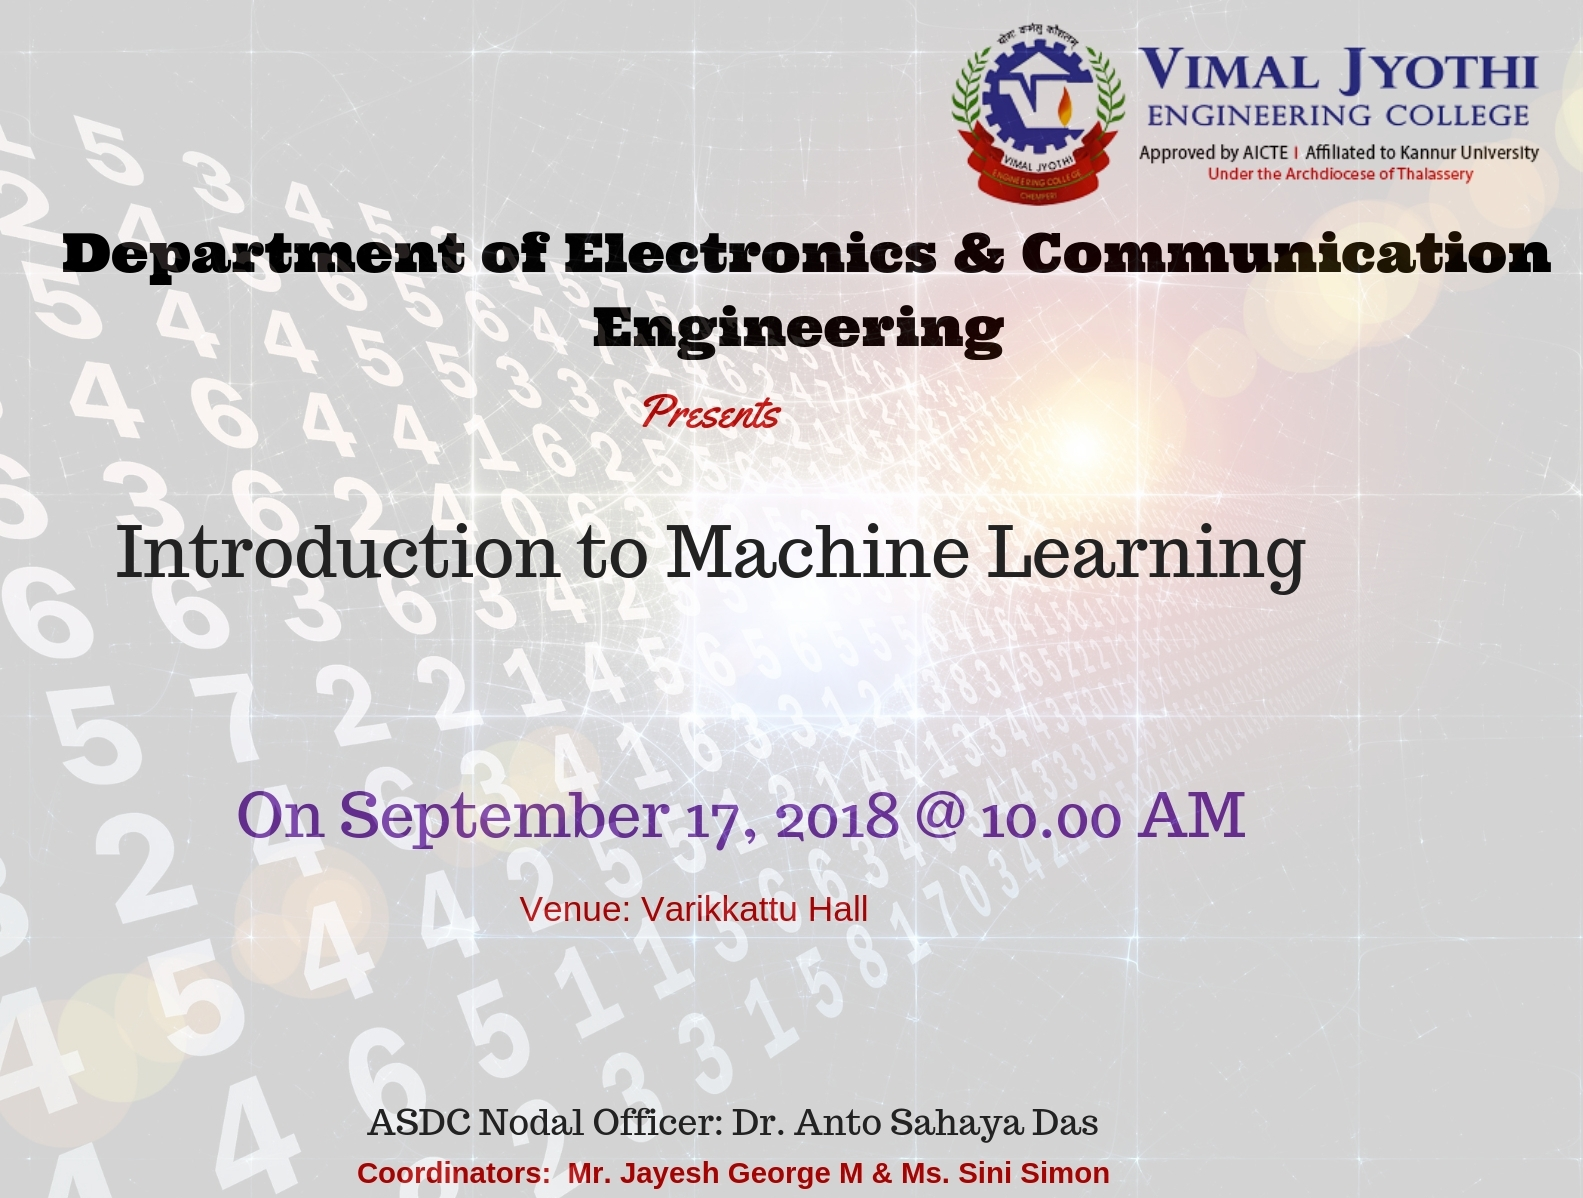 Orientation on Machine Learning course